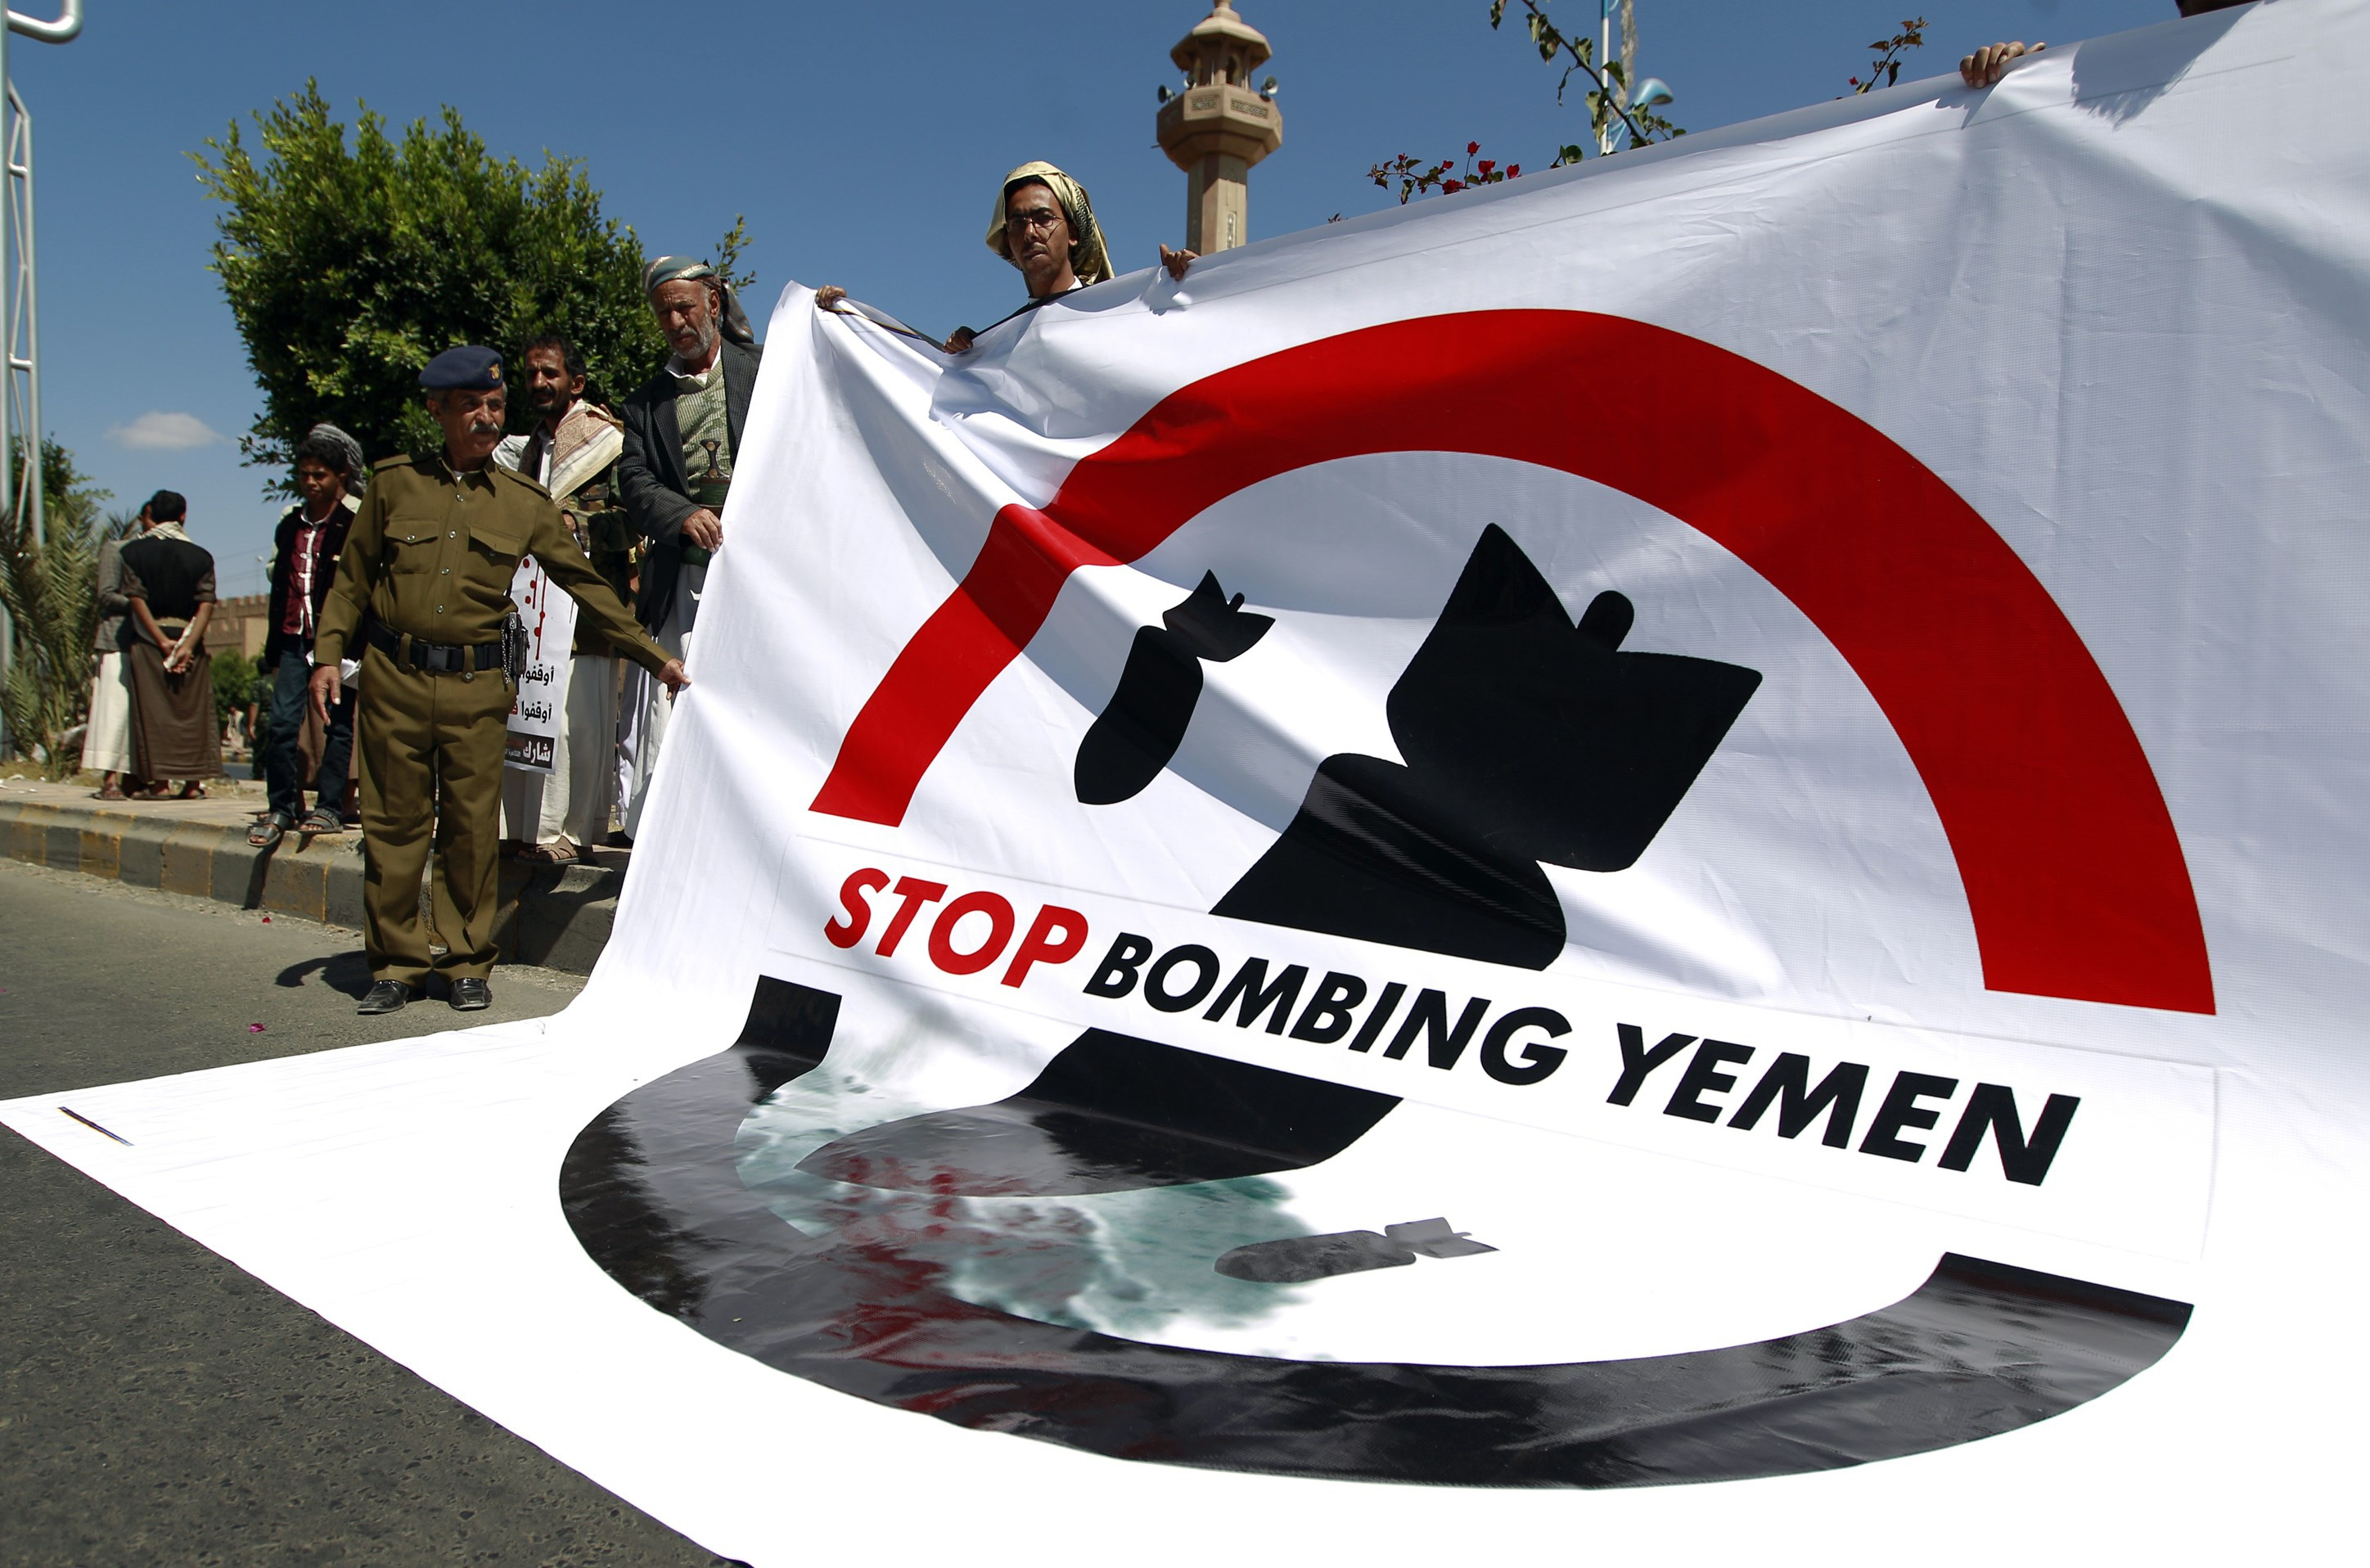 Yemenis Rally in Front of UN Office, Urging the World Body to Take Action against Saudi Aggression